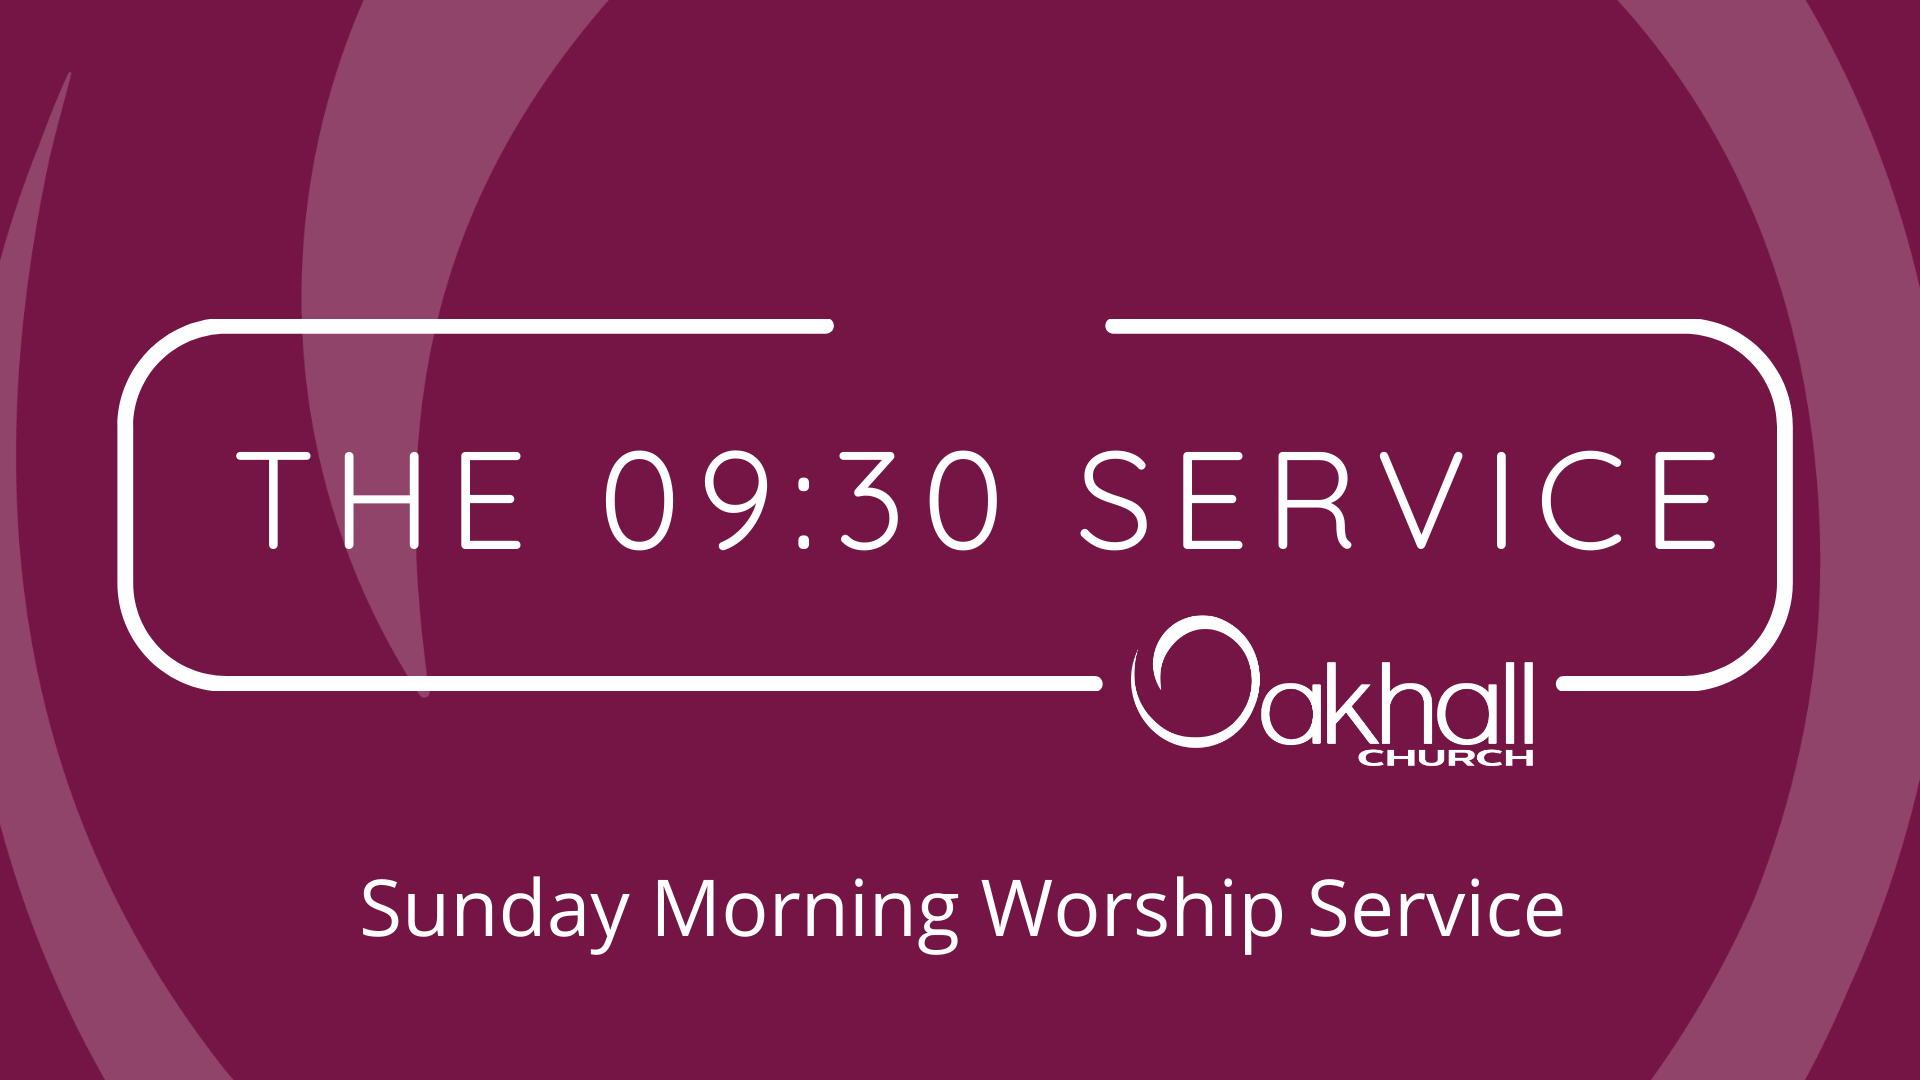 The 09:30 Service